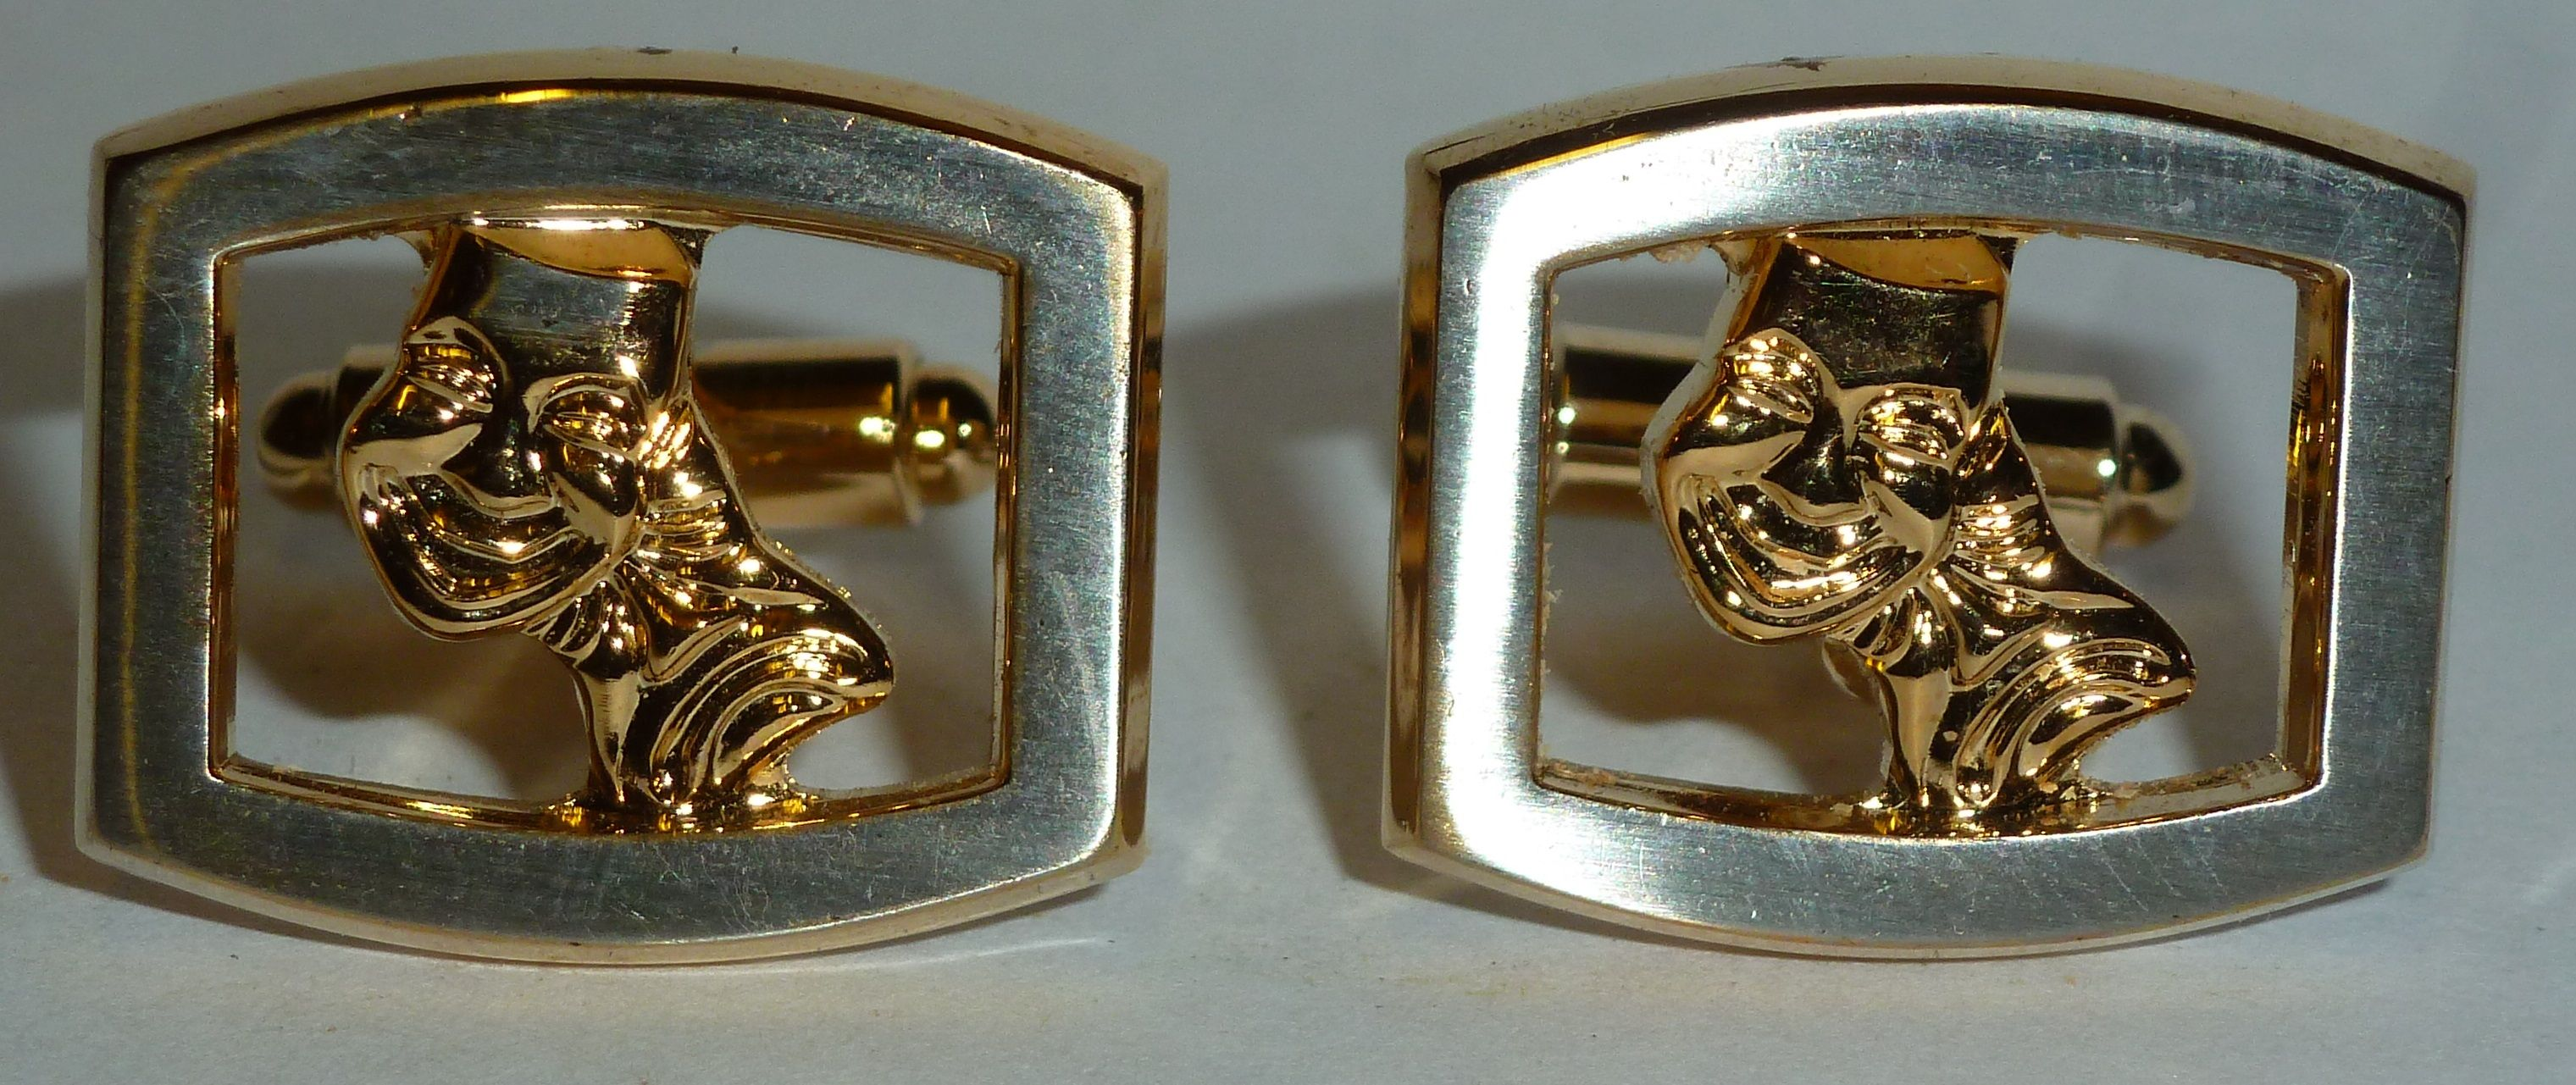 Looking for a different gift for someone theatrical? How about these lovely 1970s original vintage Hickok USA cufflinks featuring Greek Comedy and Tragedy masks for a truly unique gift